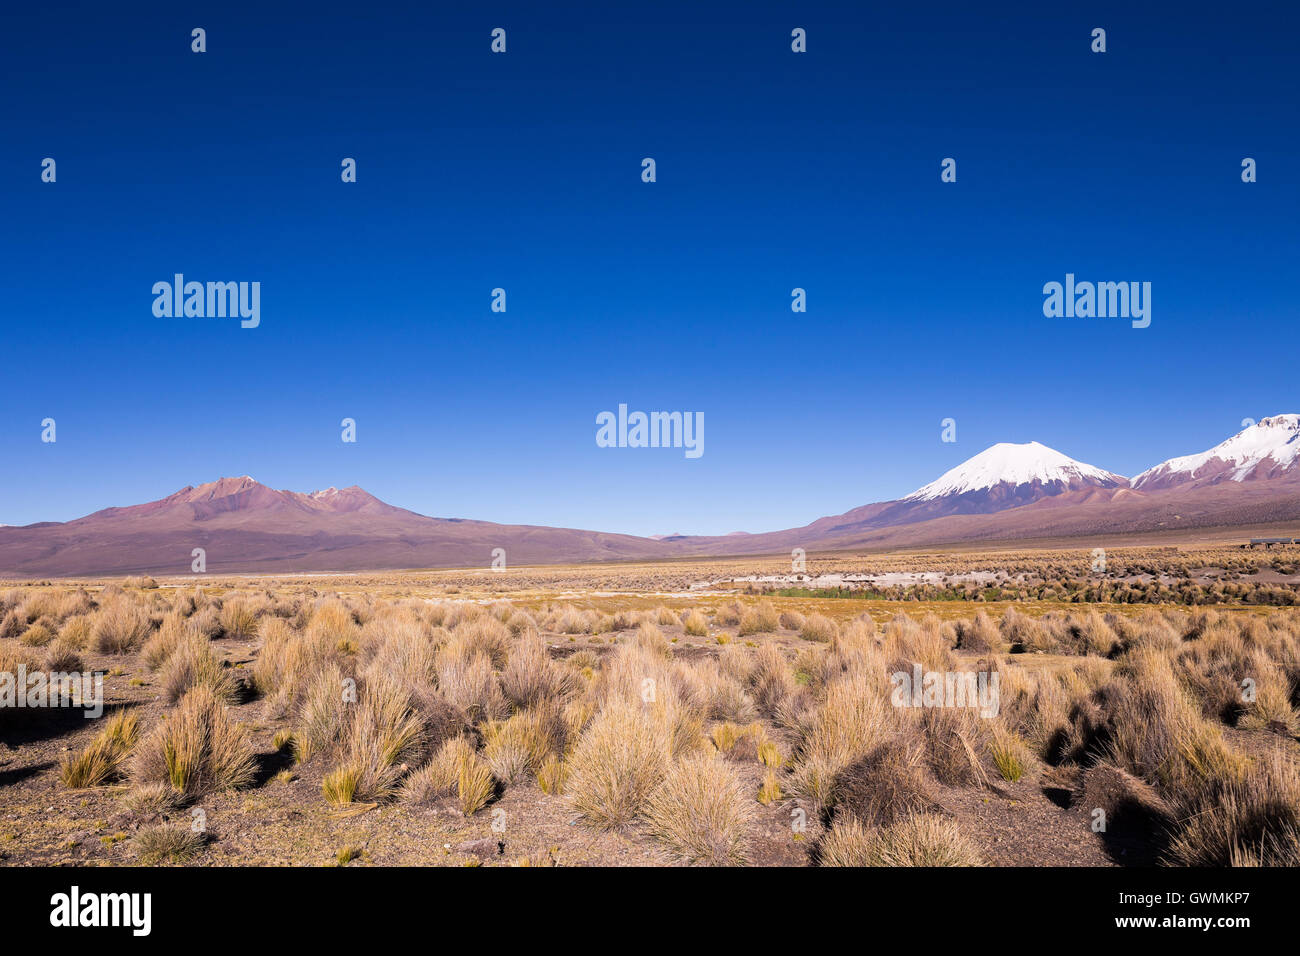 High Andean tundra landscape in the mountains of the Andes. The weather Andean Highlands Puna grassland ecoregion, - Stock Image